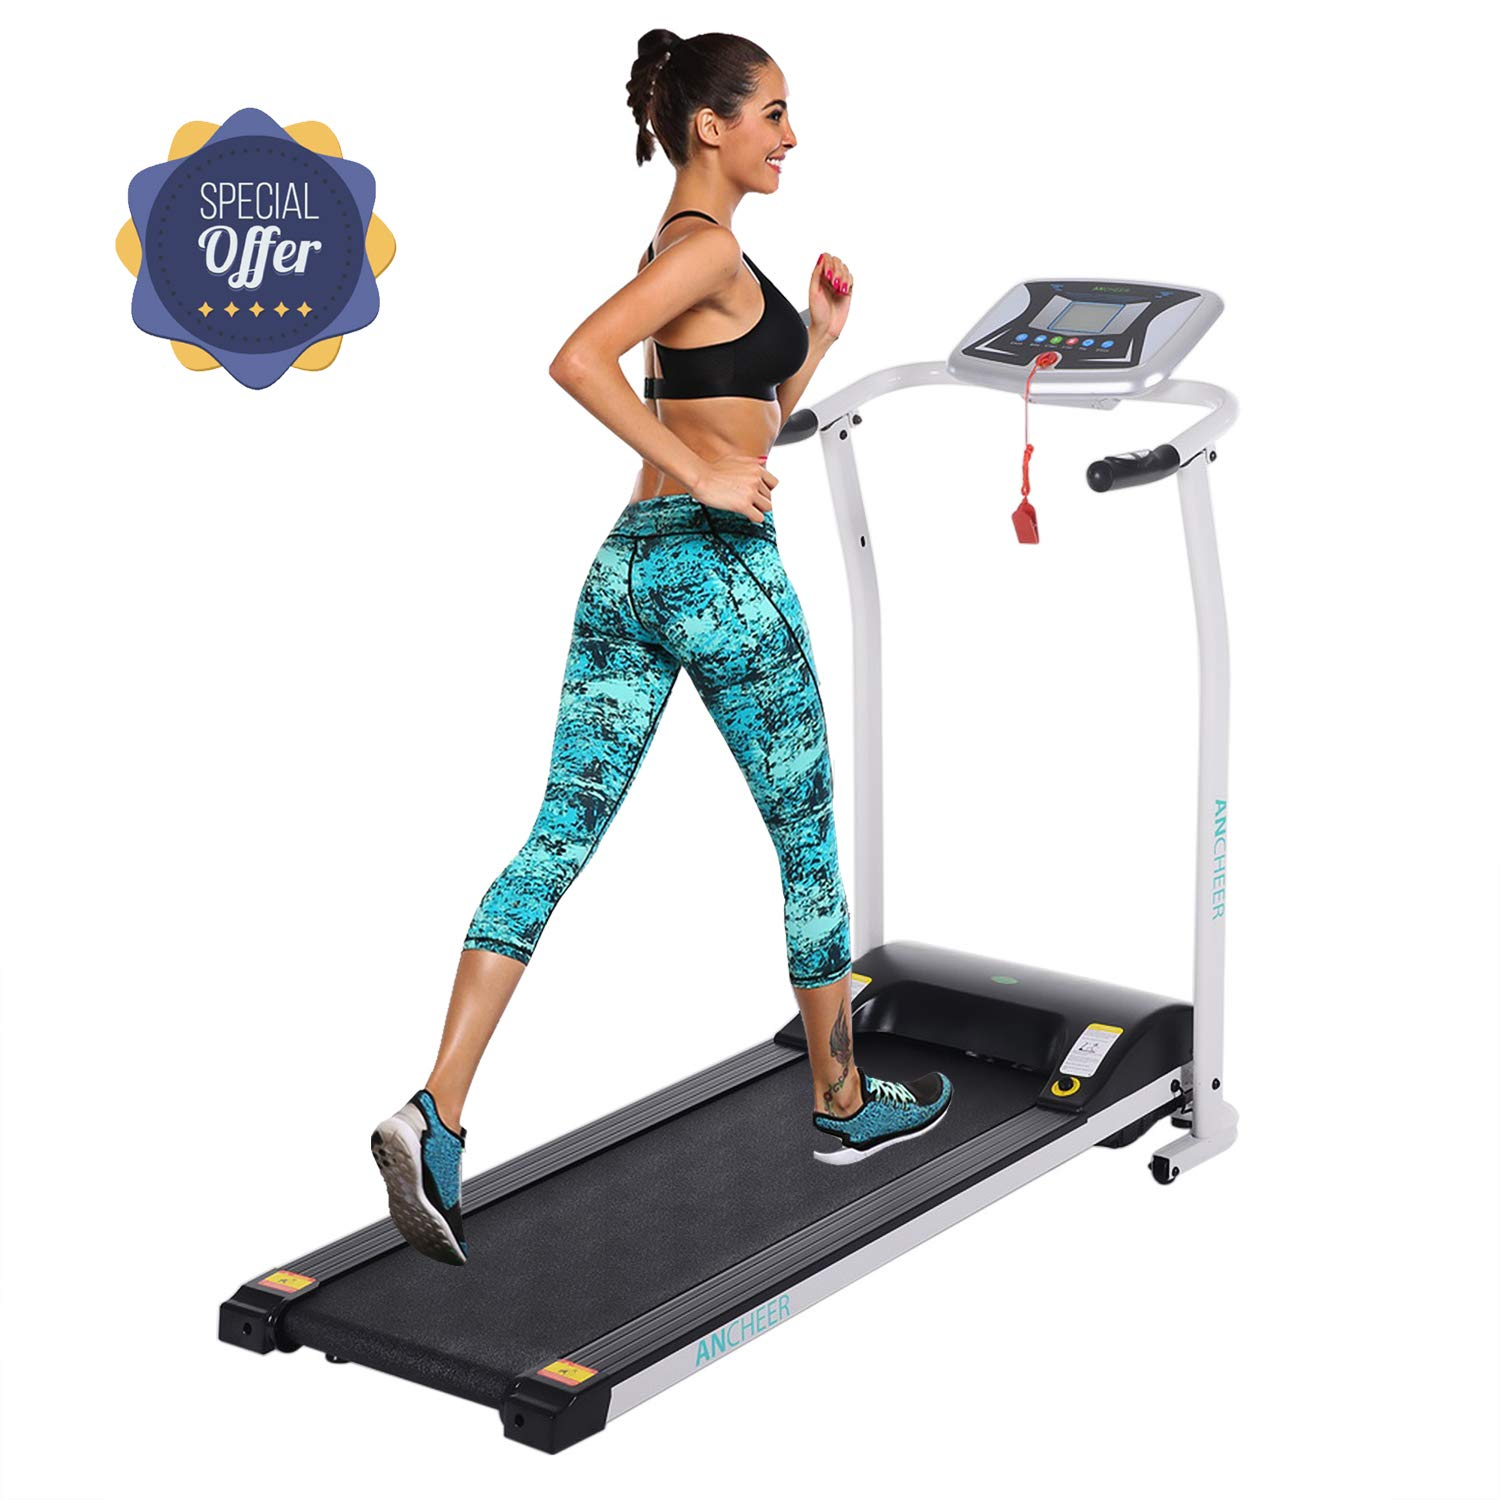 Folding Electric Treadmill Incline Motorized Running Machine Smartphone APP Control for Home Gym Exercise (Z 1.5 HP - White - Not with APP Control- Not Incline)